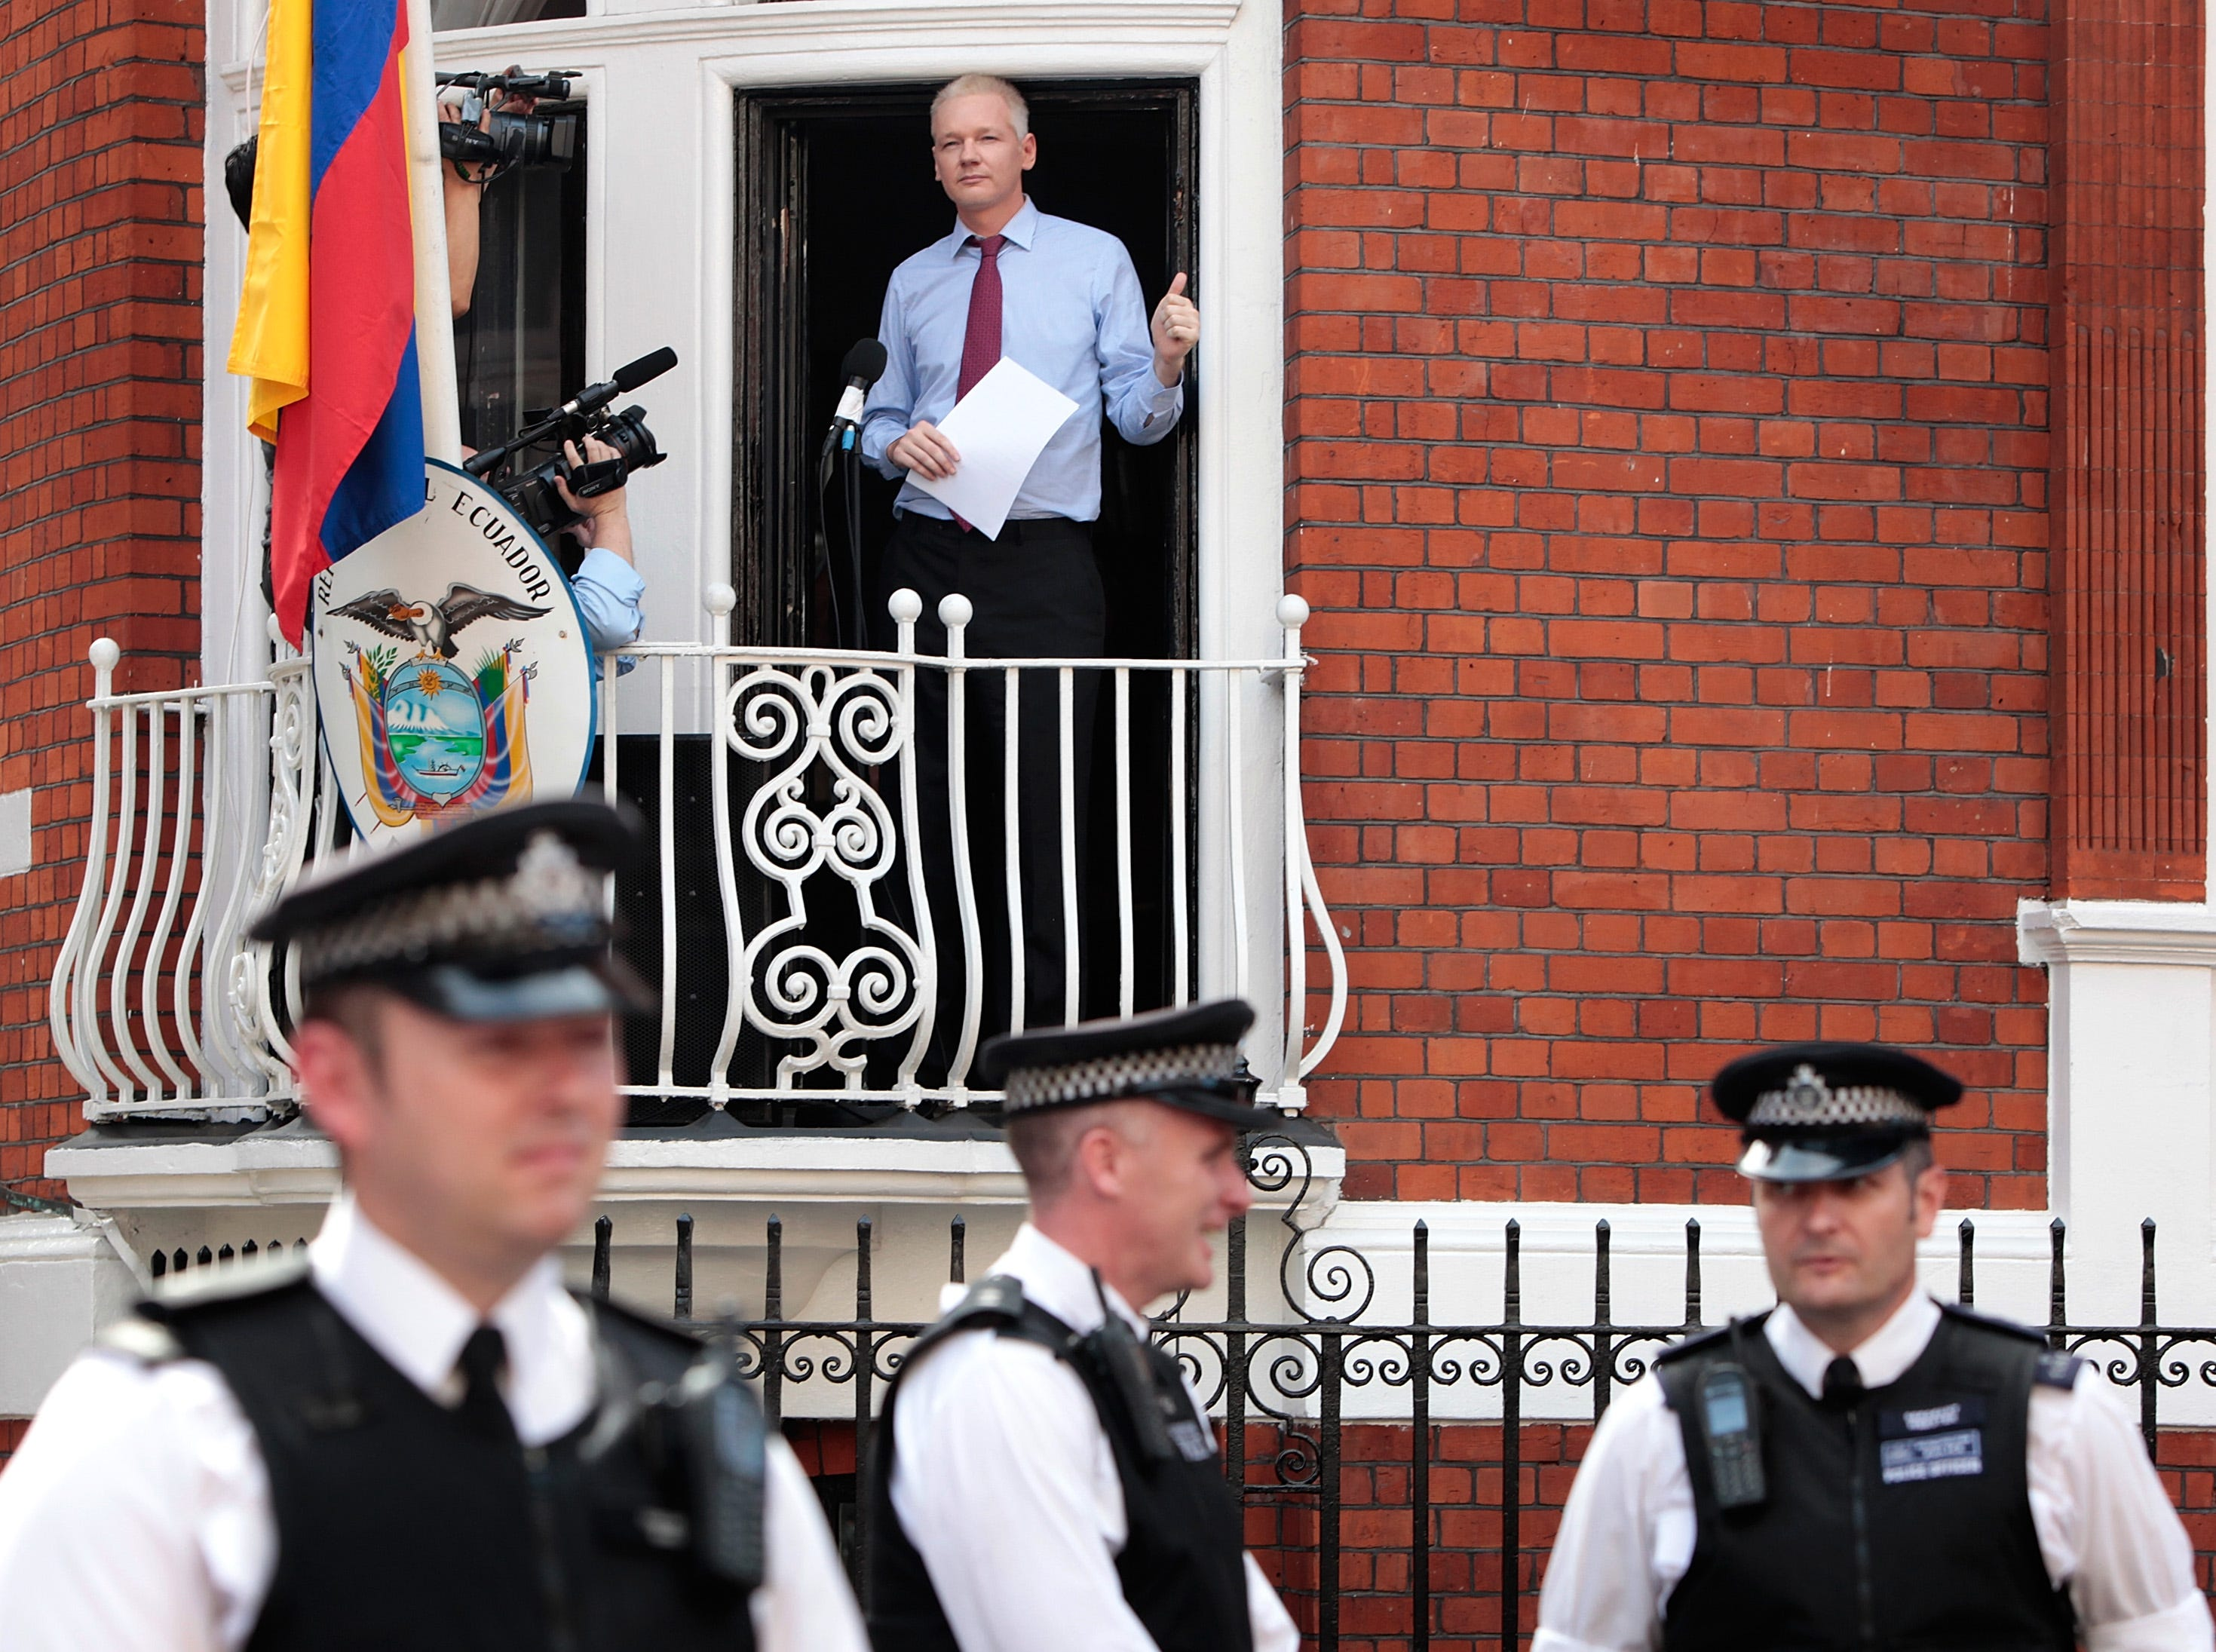 Julian Assange is seen on the balcony of the Ecuadoran embassy on August 19, 2012 in London, England. Assange, 47, took refuge in the embassy in 2012 to avoid extradition to Sweden for questioning over the rape allegations.